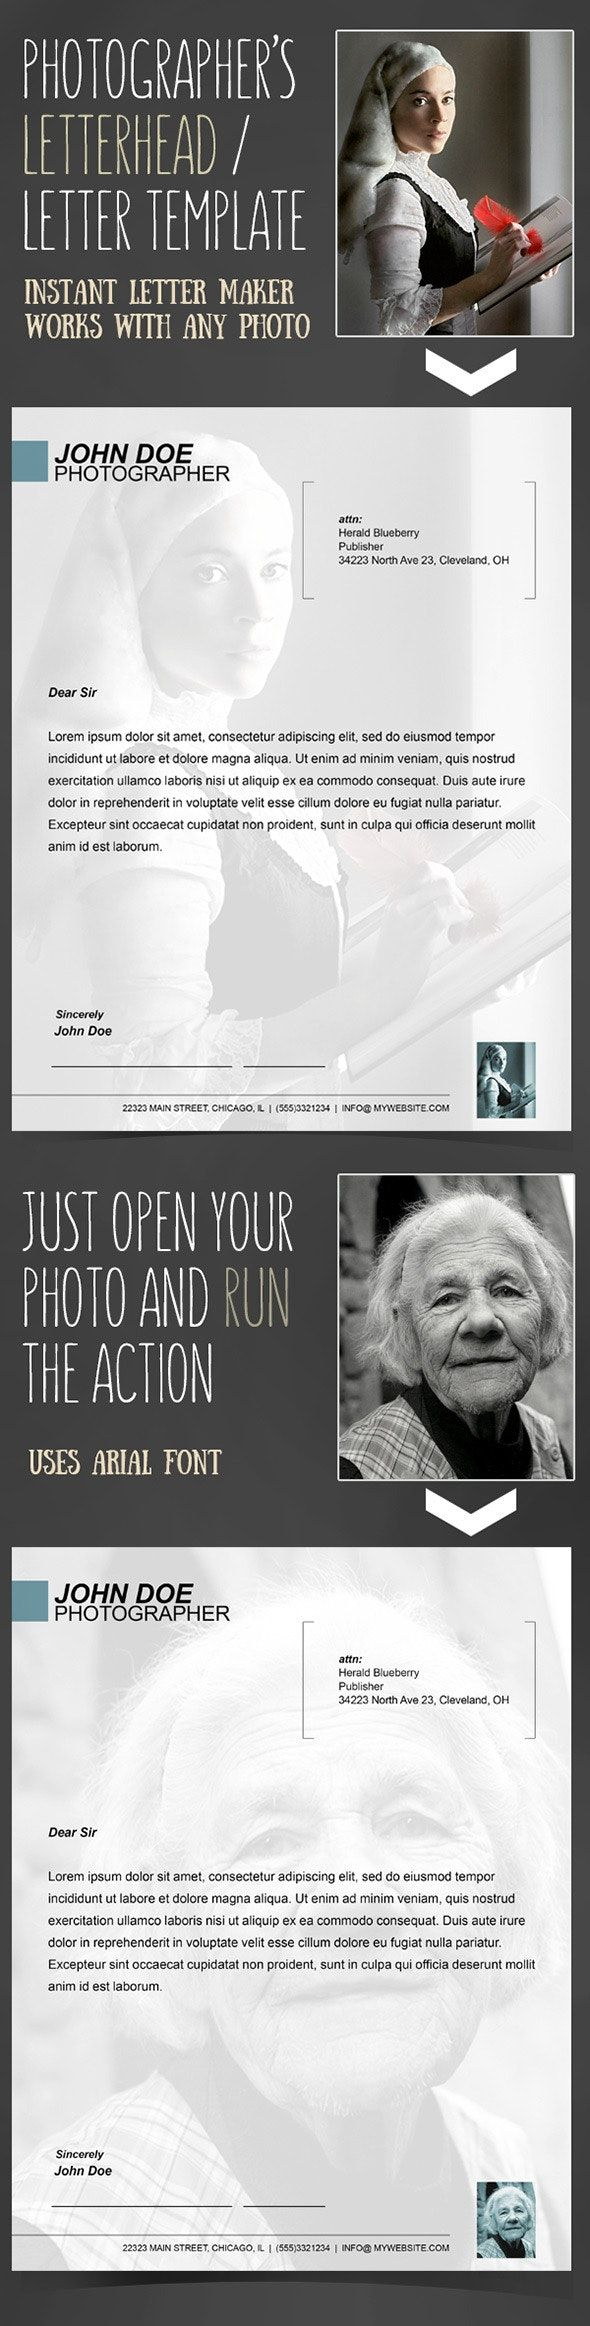 Instant Letterhead for Photographers Action Photo Effects